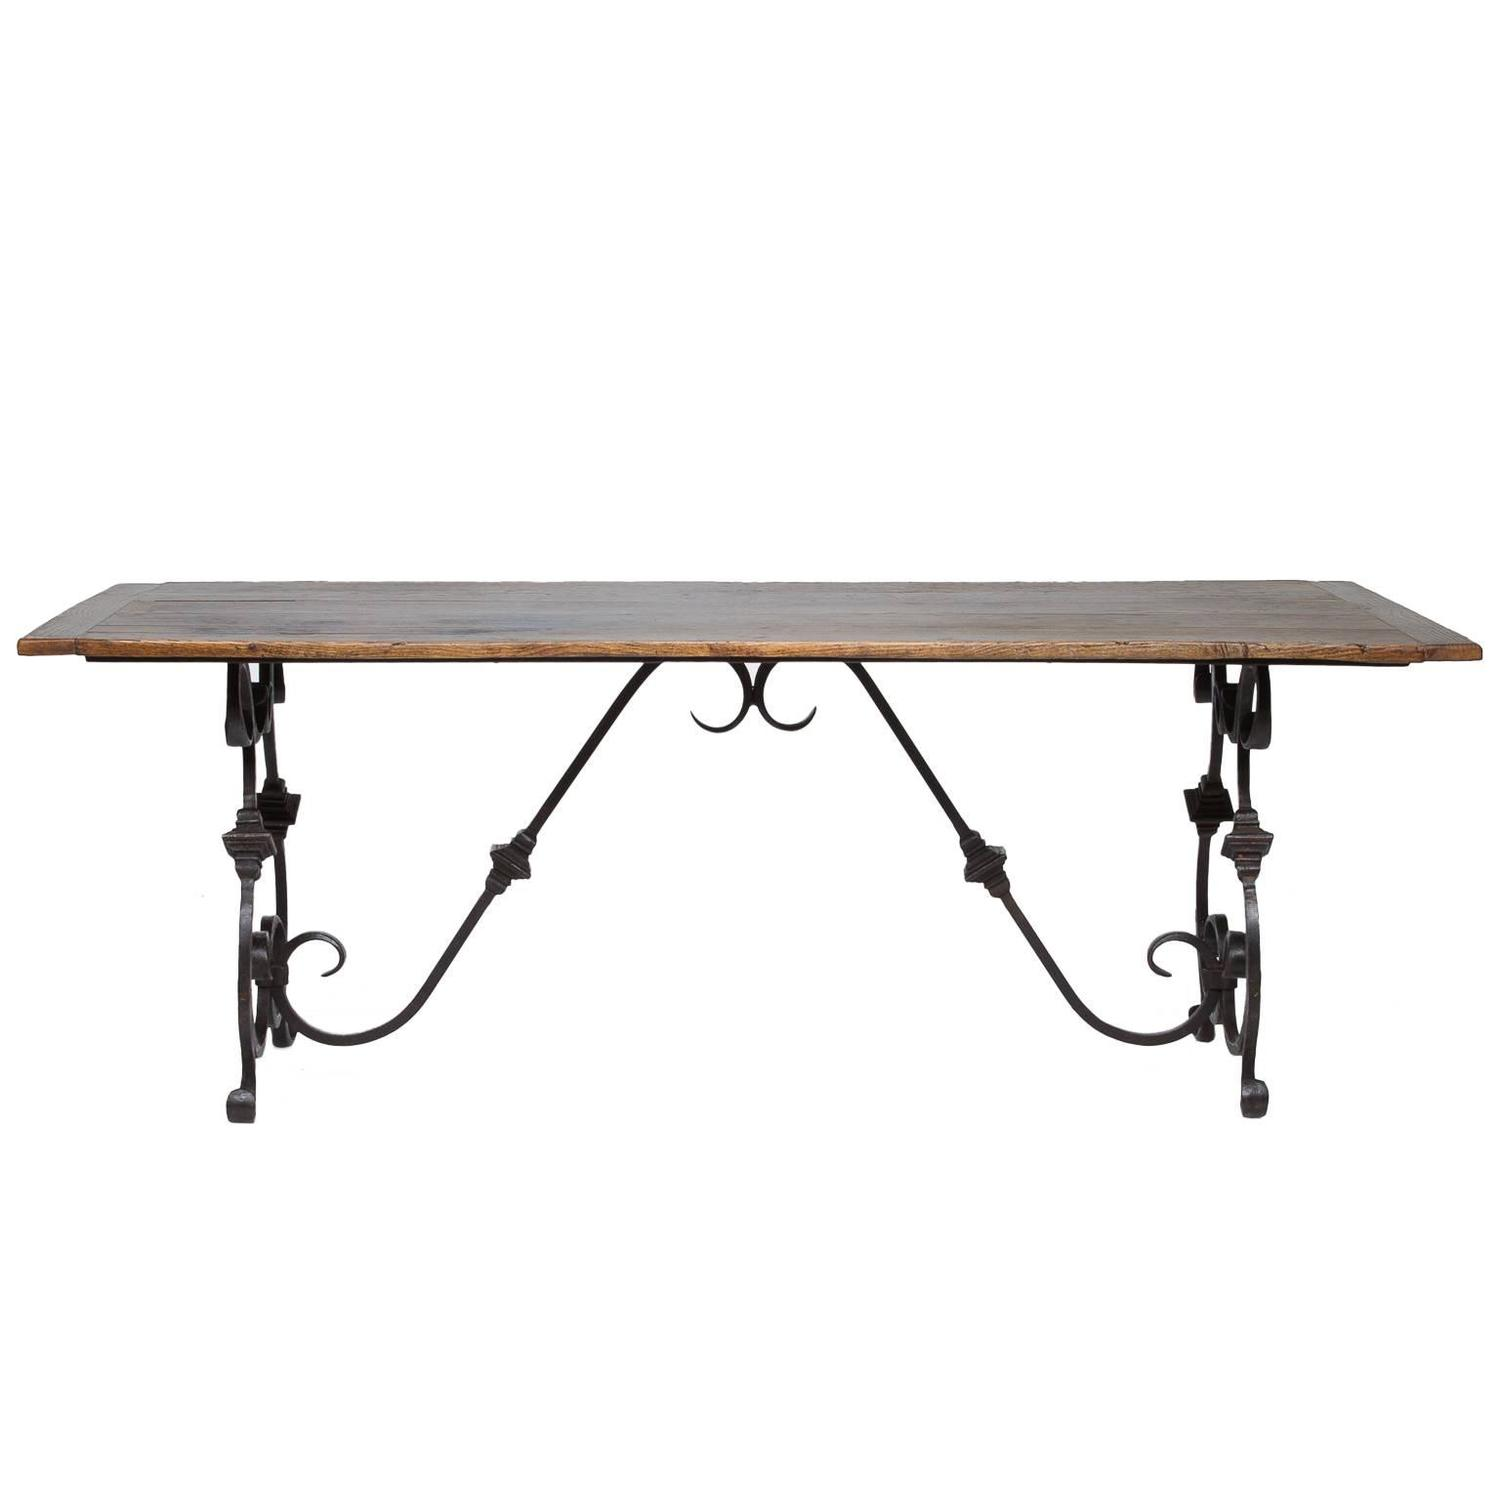 iron and wood dining table at 1stdibs. Black Bedroom Furniture Sets. Home Design Ideas